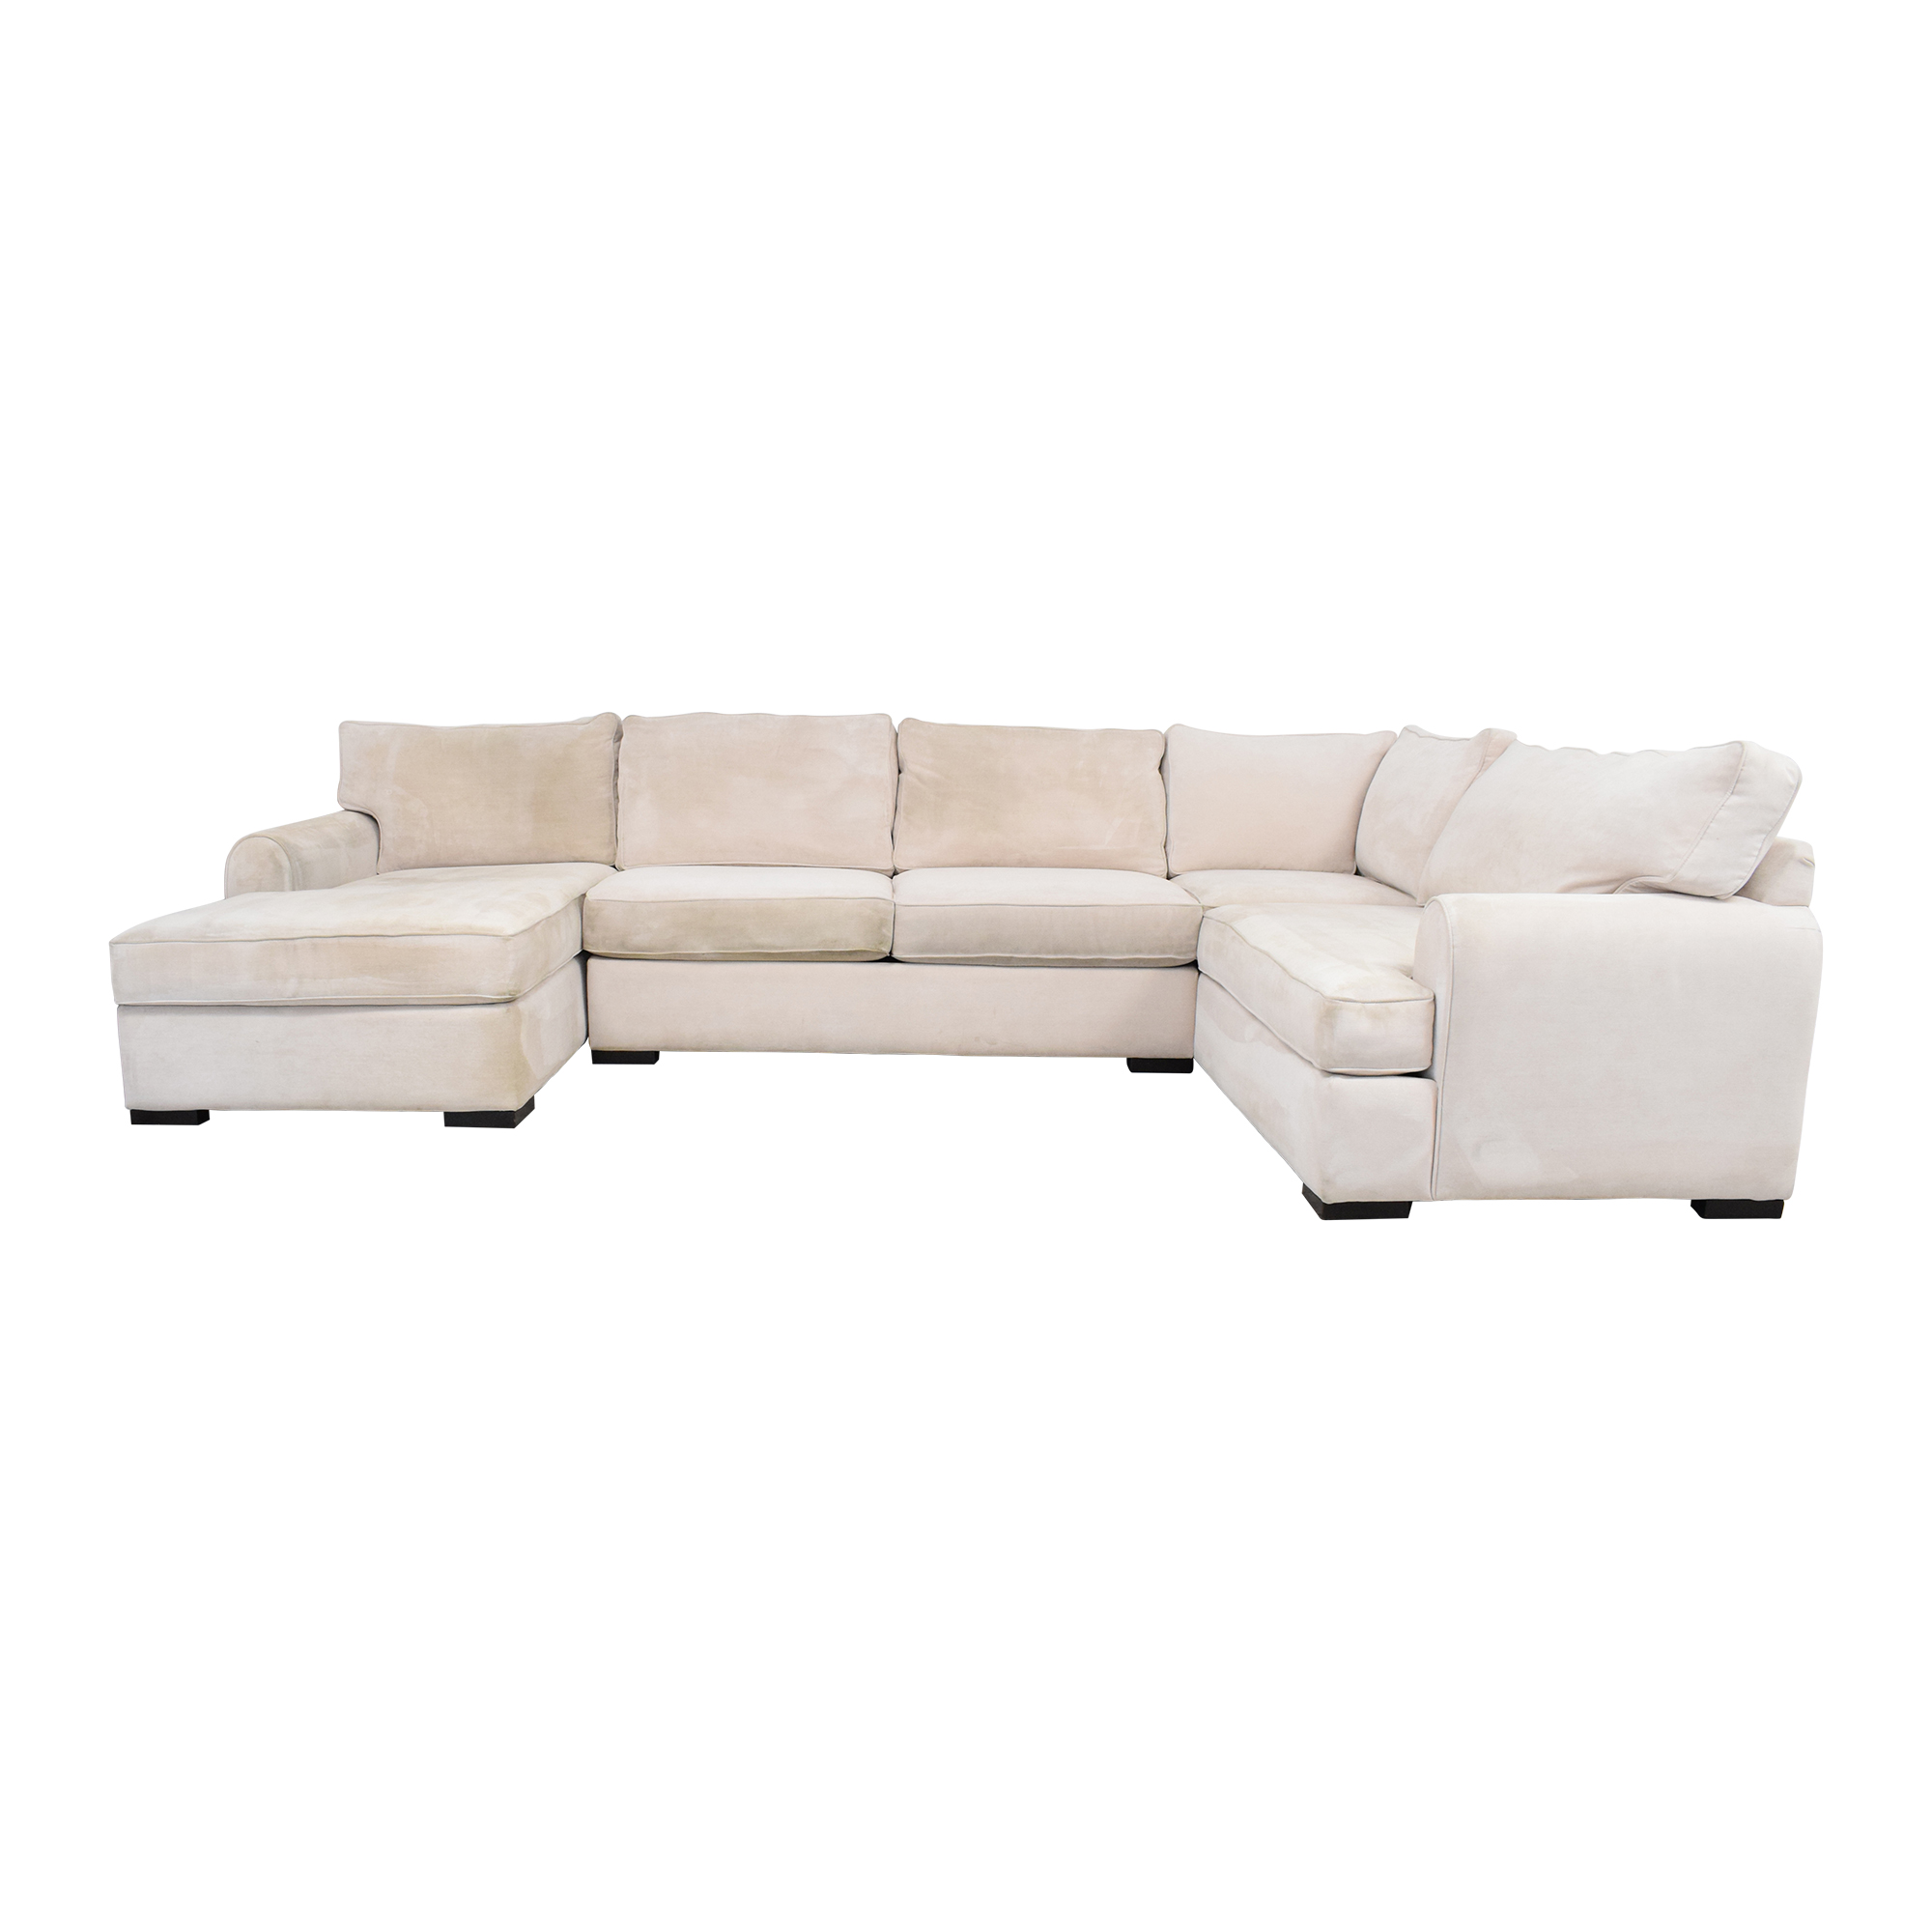 Jonathan Louis Jonathan Louis Aubrey Chaise Sectional on sale